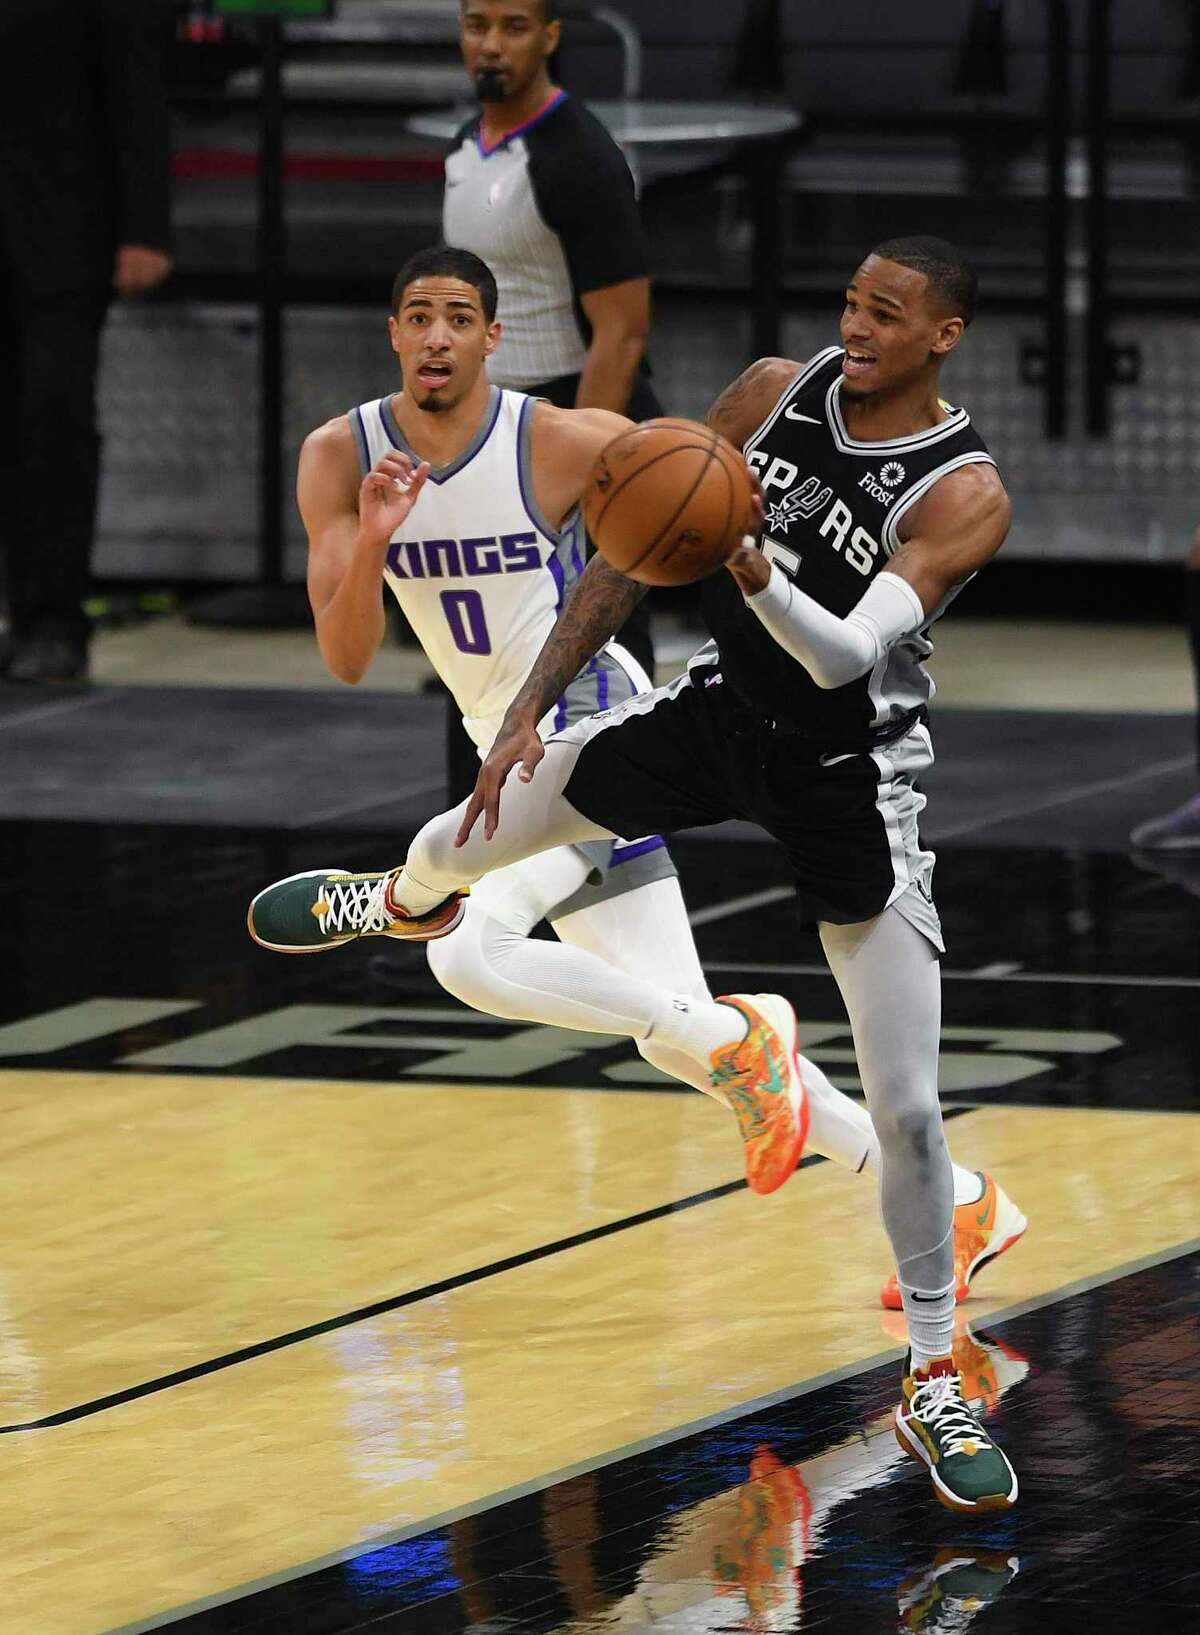 DeJounte Murray of the San Antonio Spurs saves the ball from going out of bounds as Tyrese Haliburton of the Sacramento Kings watches during NBA action in the AT&T Center on Wednesday, March 31, 2021.